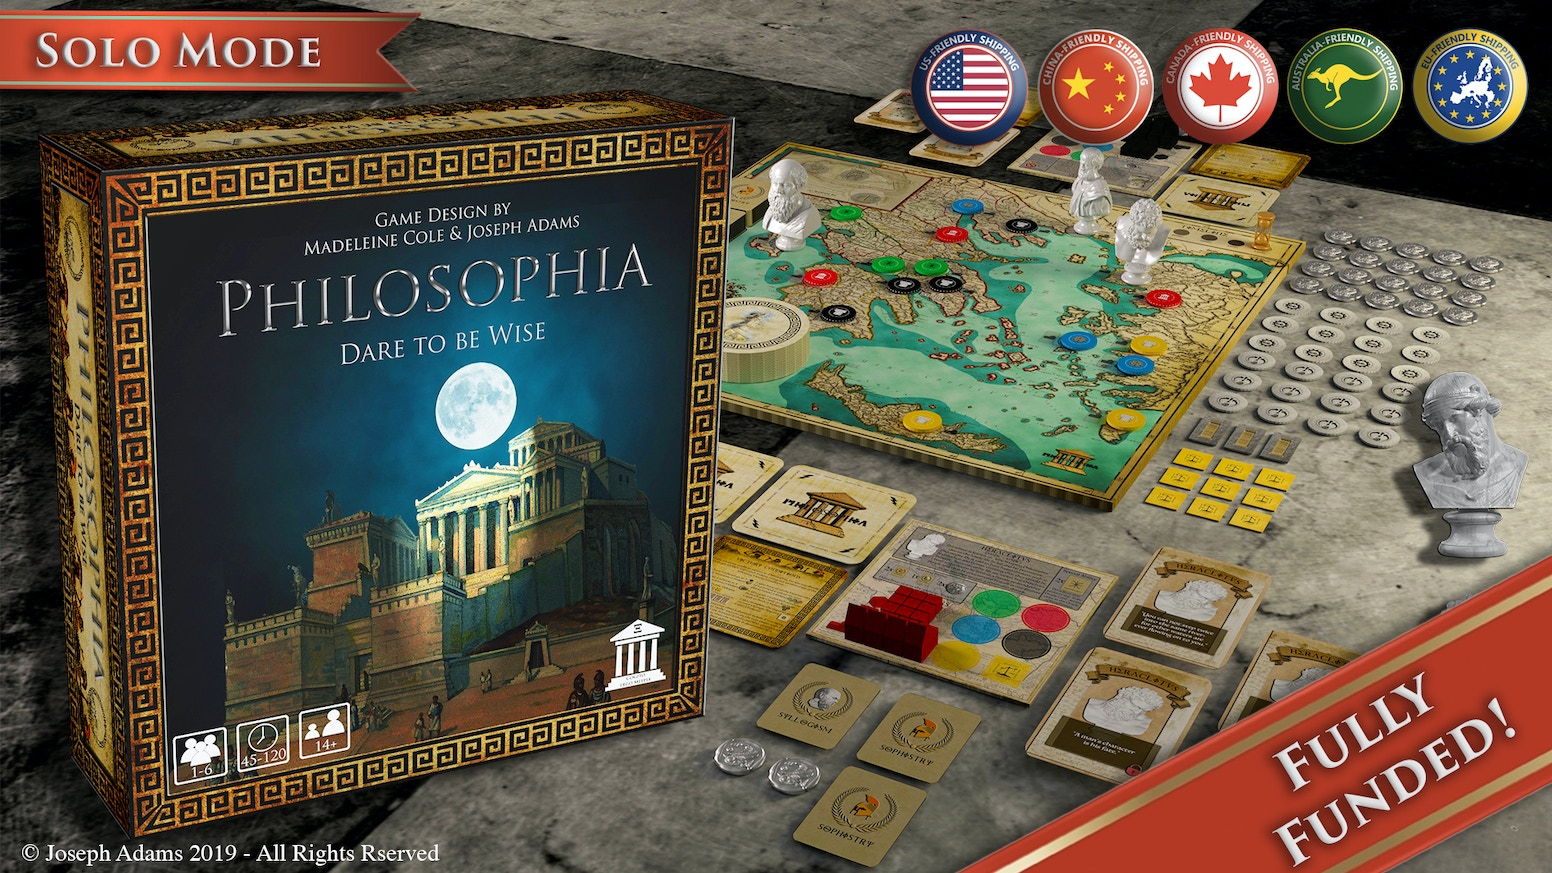 An epic, odyssey, sandbox adventure for 1 to 6 players. Dare to be wise in this unique tabletop experience. LATE PLEDGE AVAILABLE! Visit www.philosophiagame.com to get your copy.